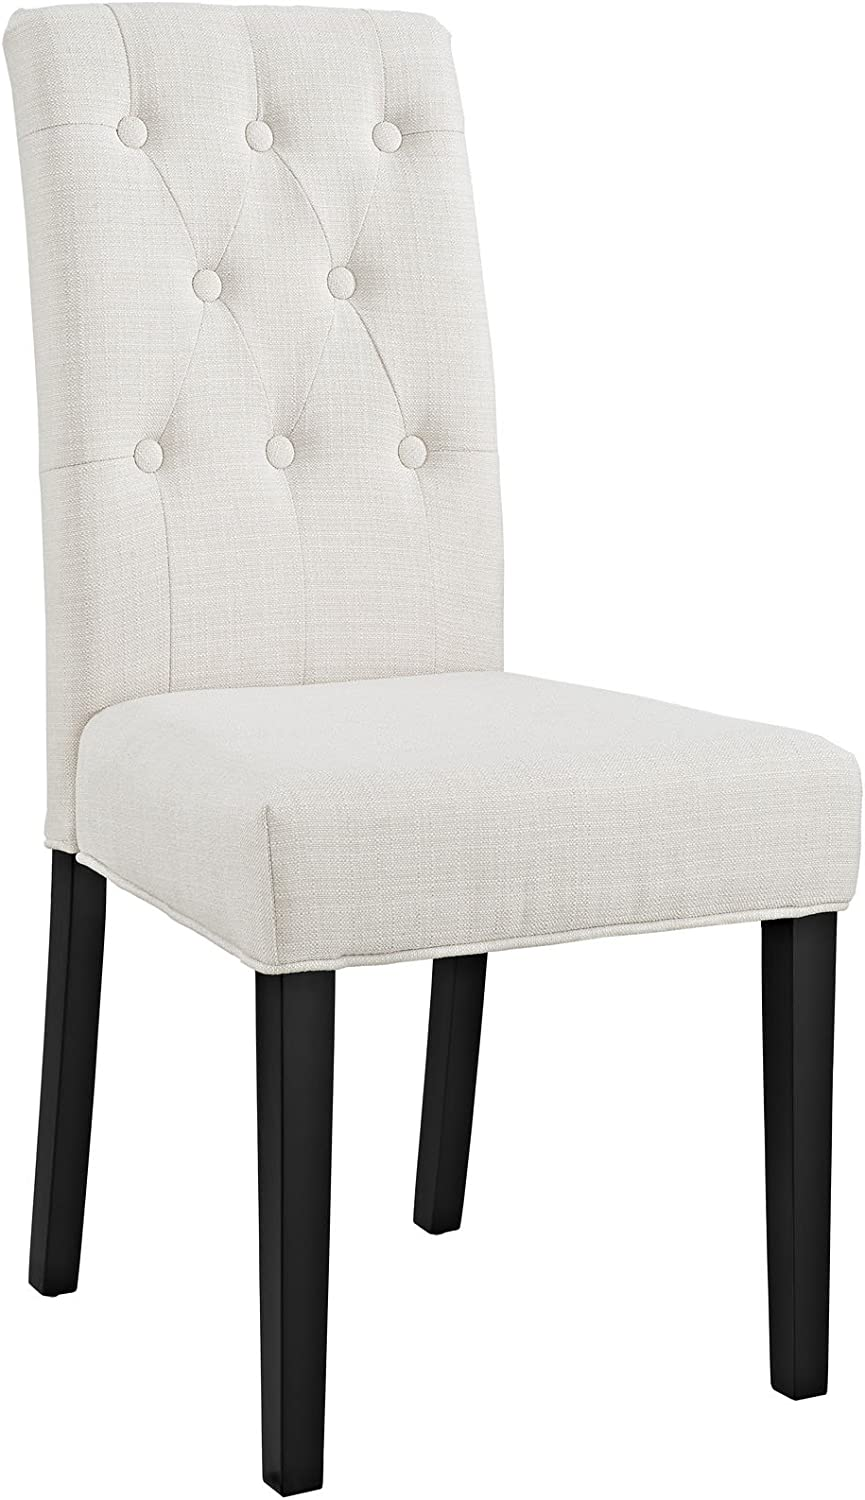 Modway Confer Modern Tufted Upholstered Fabric Parsons Kitchen and Dining Room Chair in Beige - Chairs